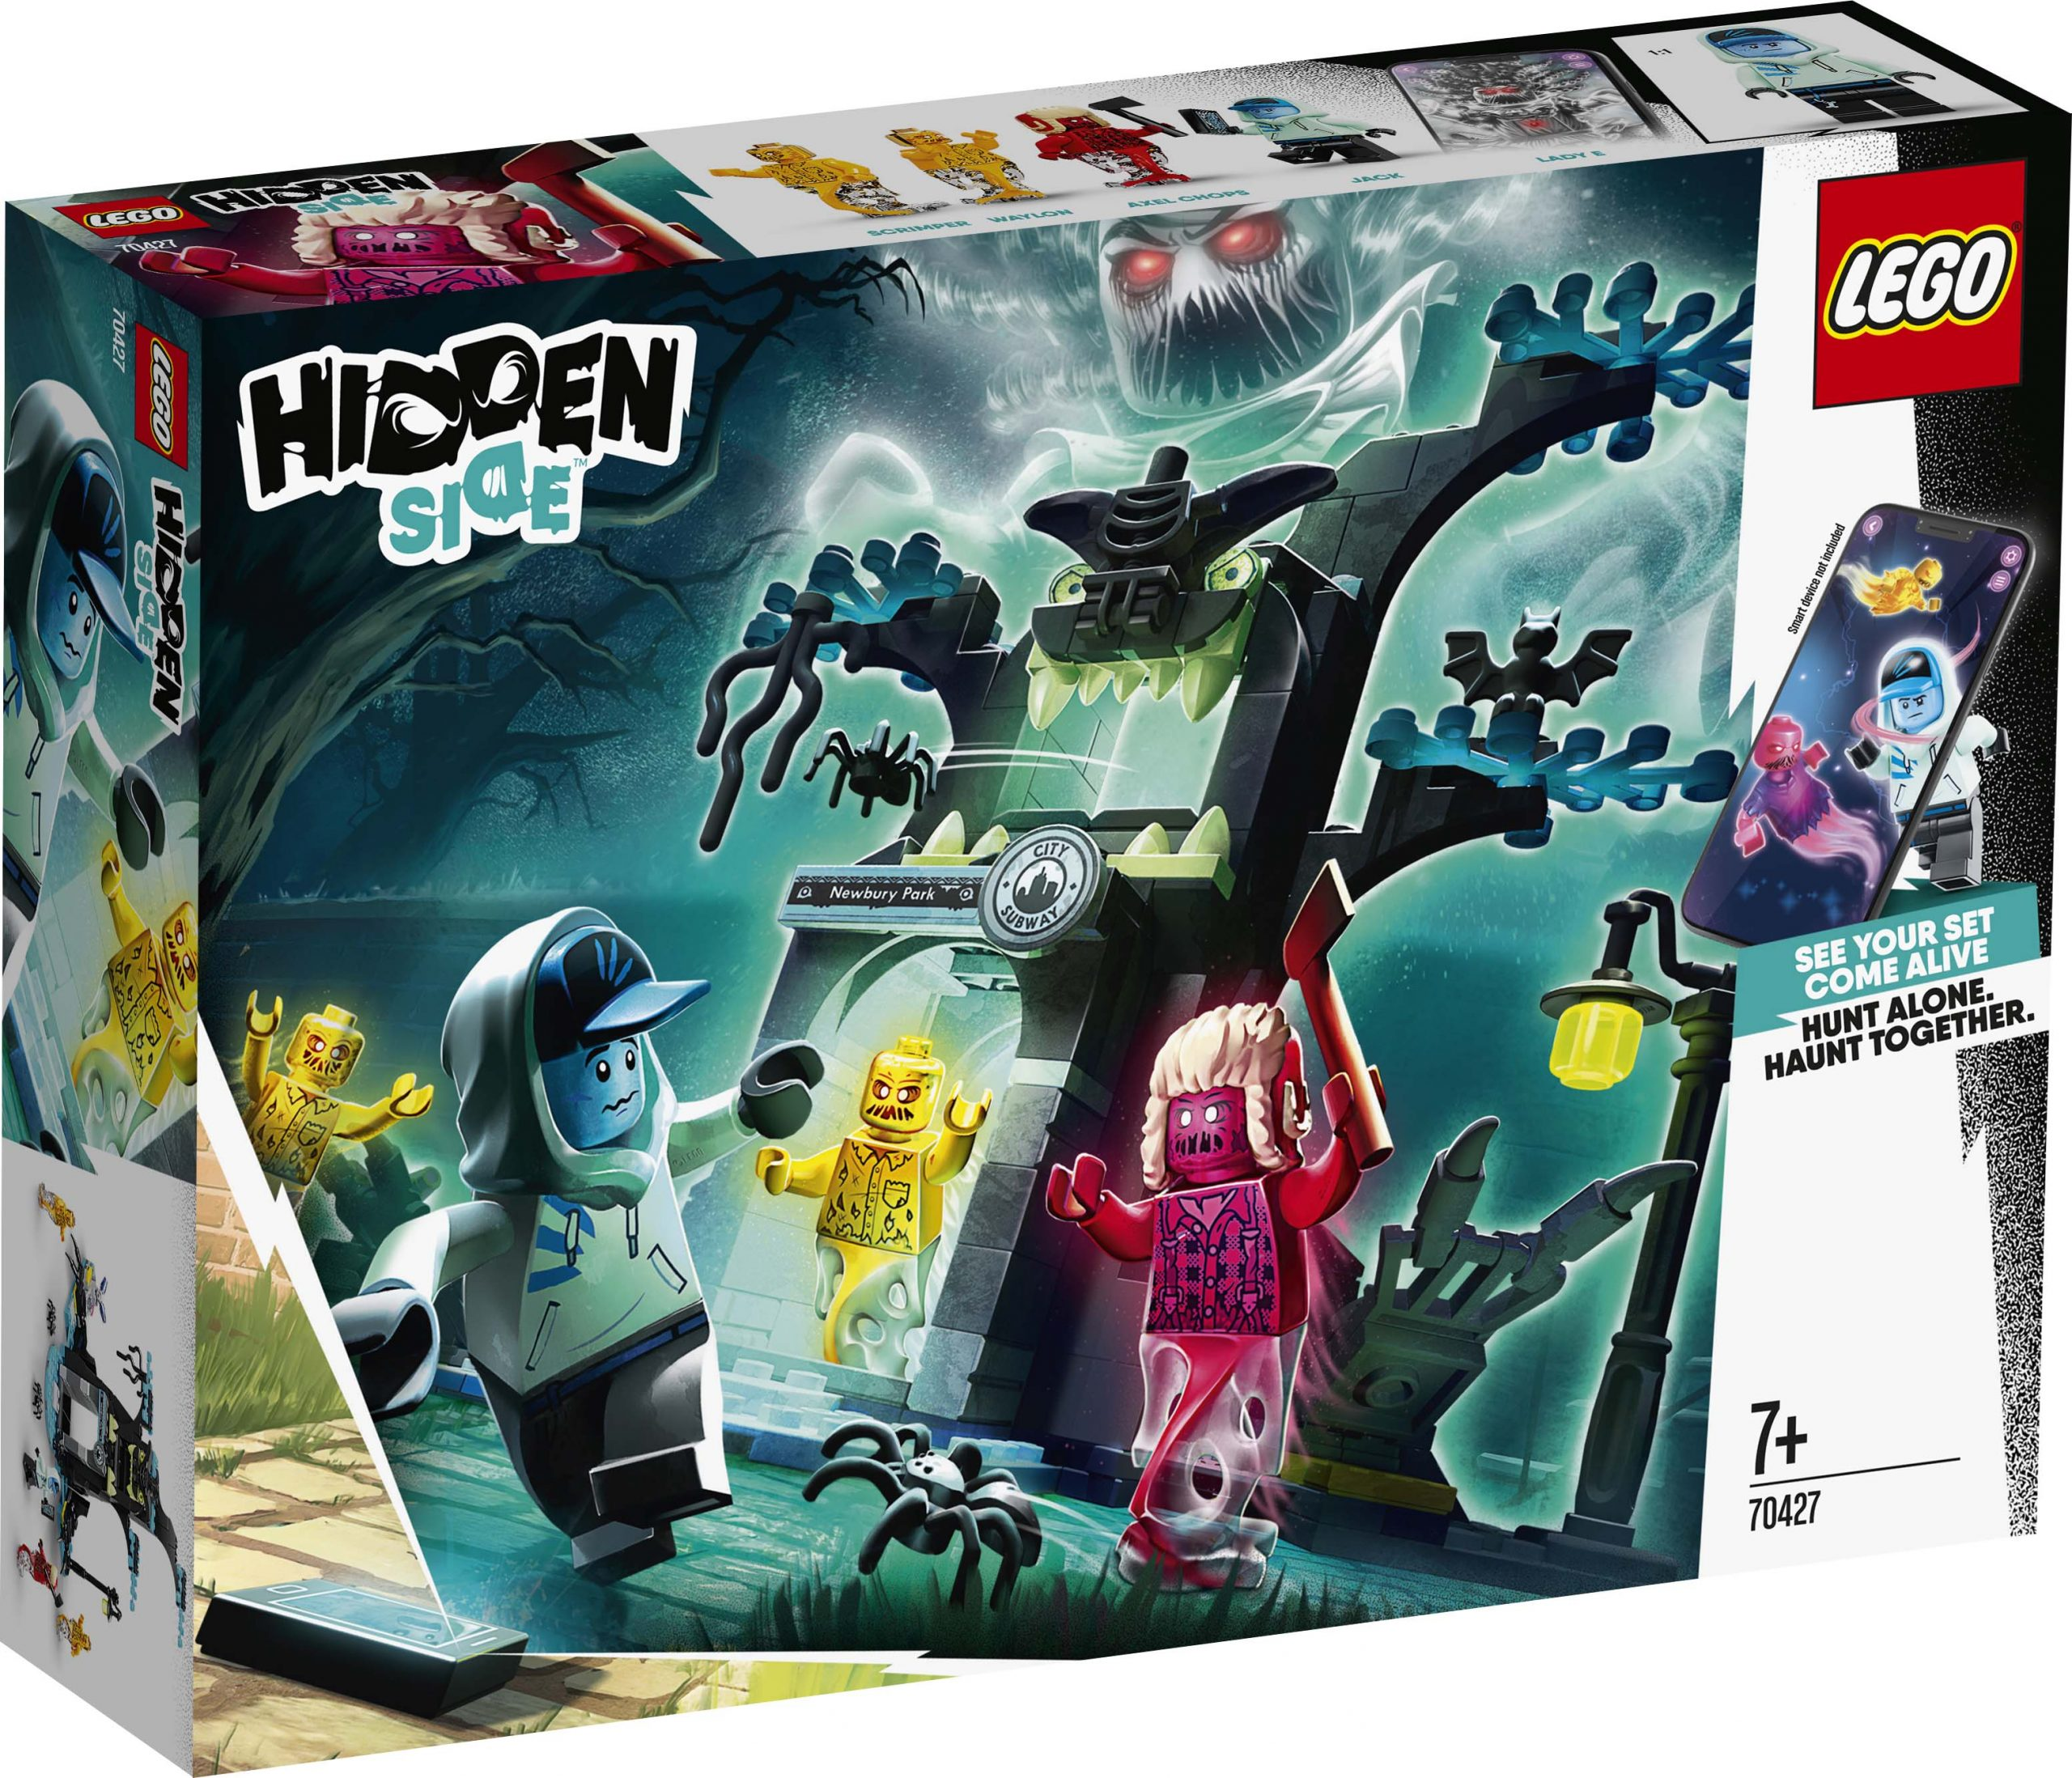 New Lego Sets 2020.Lego Hidden Side 2020 Sets Officially Revealed The Brick Fan